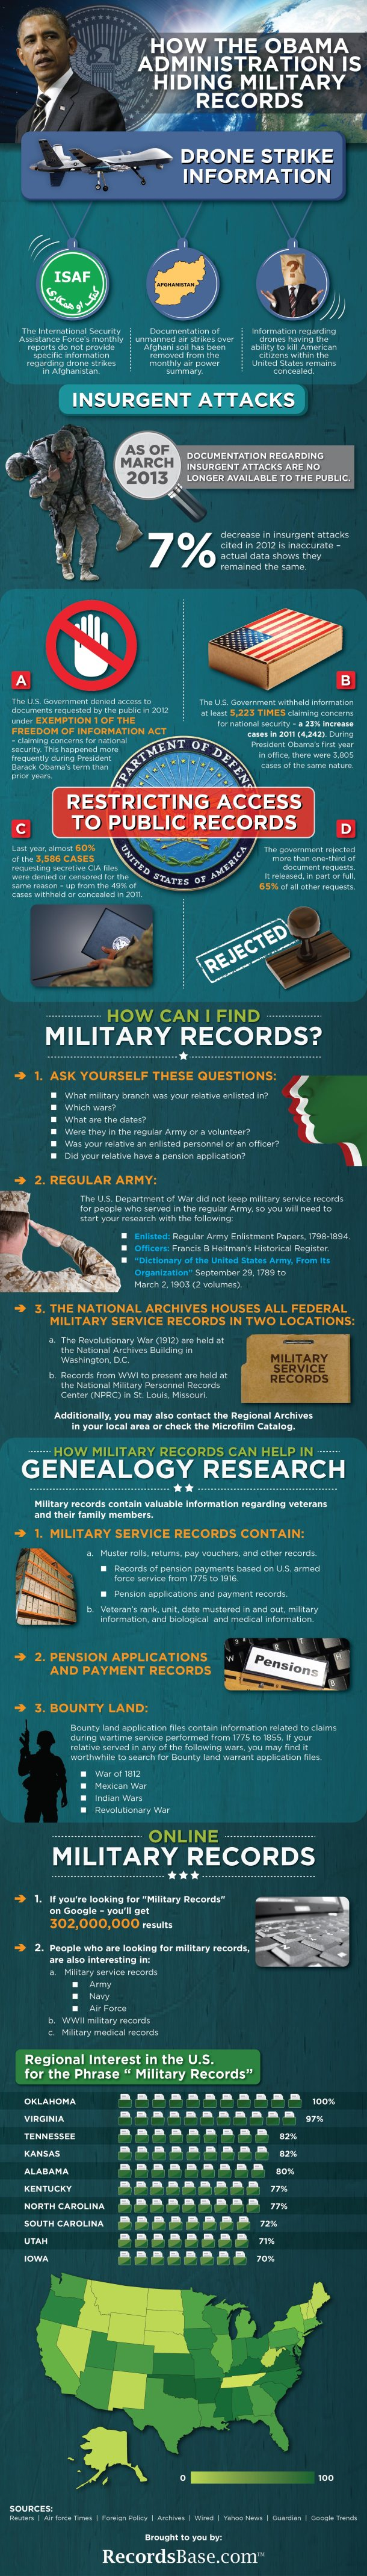 how-the-obama-administration-is-hiding-military-records_5188dd781795f